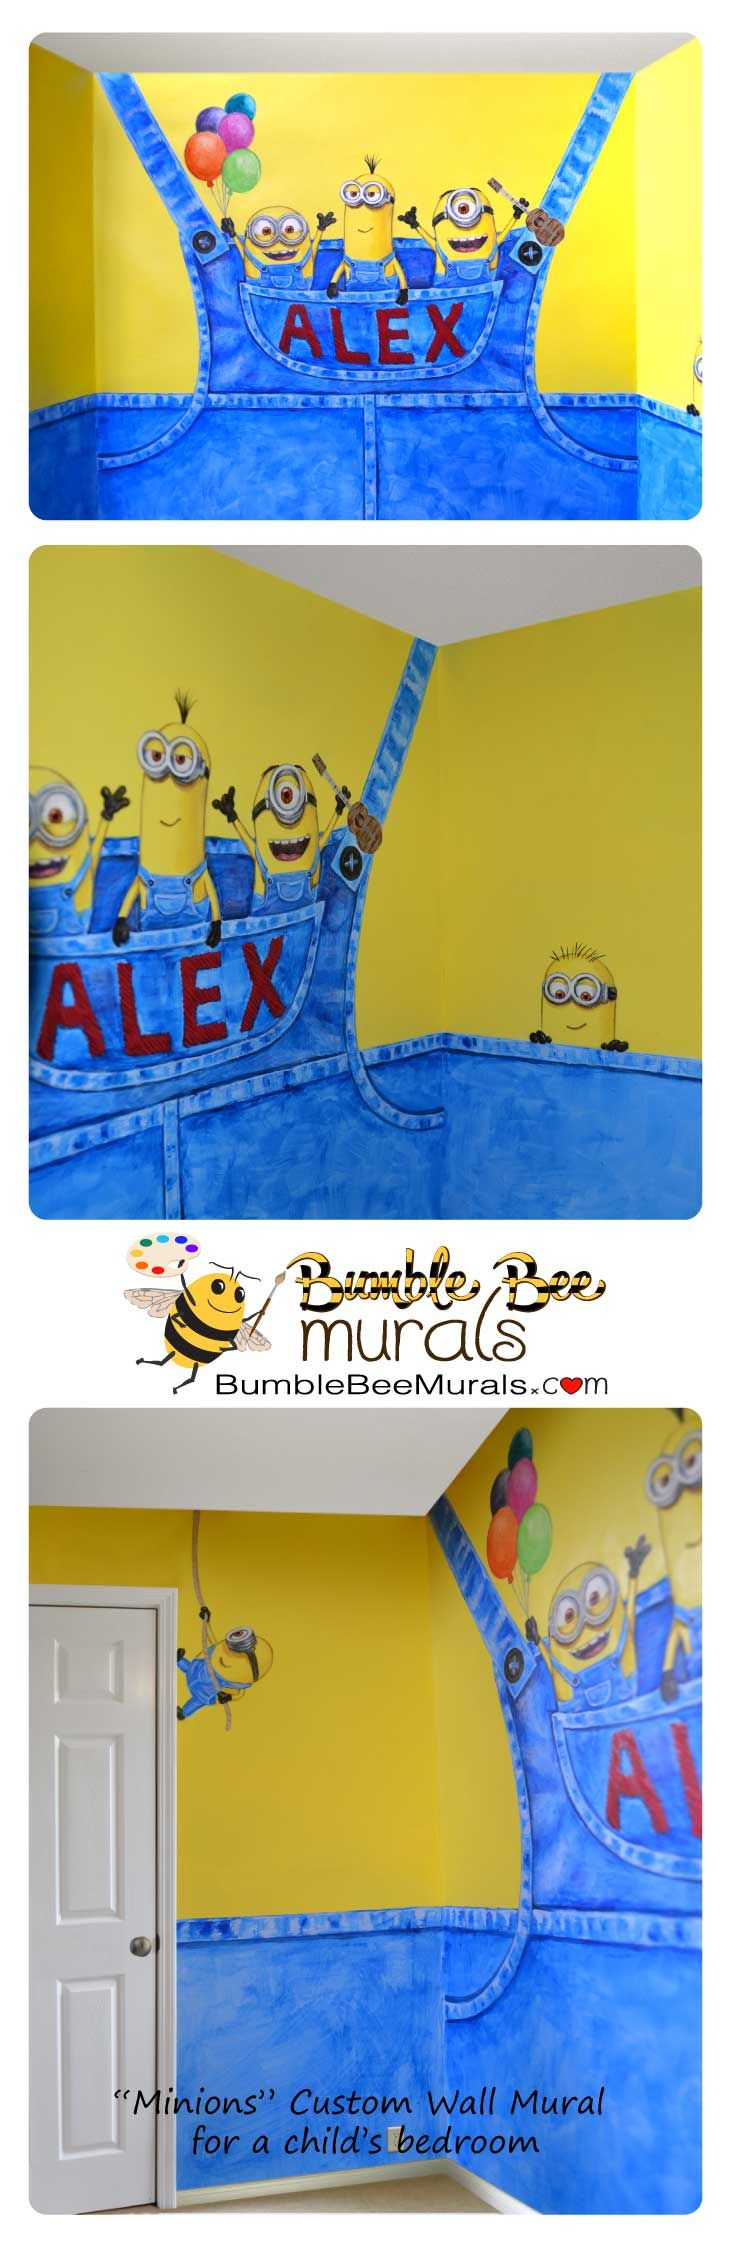 best 25 disney wall murals ideas on pinterest disney themed cute minions inspired custom wall mural hand painted for a child s bedroom minionsrule